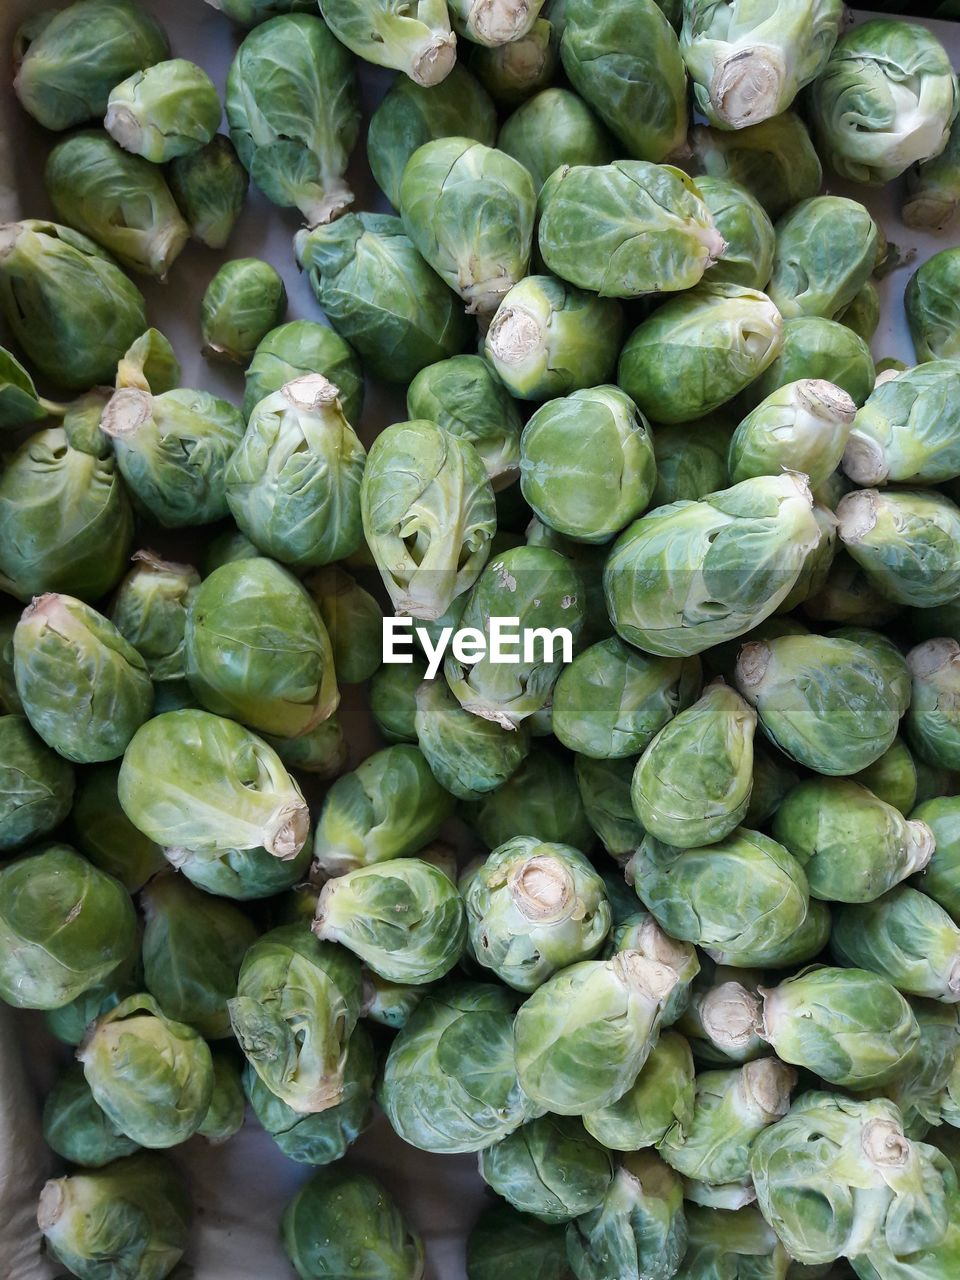 green color, wellbeing, healthy eating, full frame, freshness, vegetable, large group of objects, food and drink, backgrounds, food, abundance, no people, brussels sprout, raw food, day, for sale, close-up, retail, market, directly above